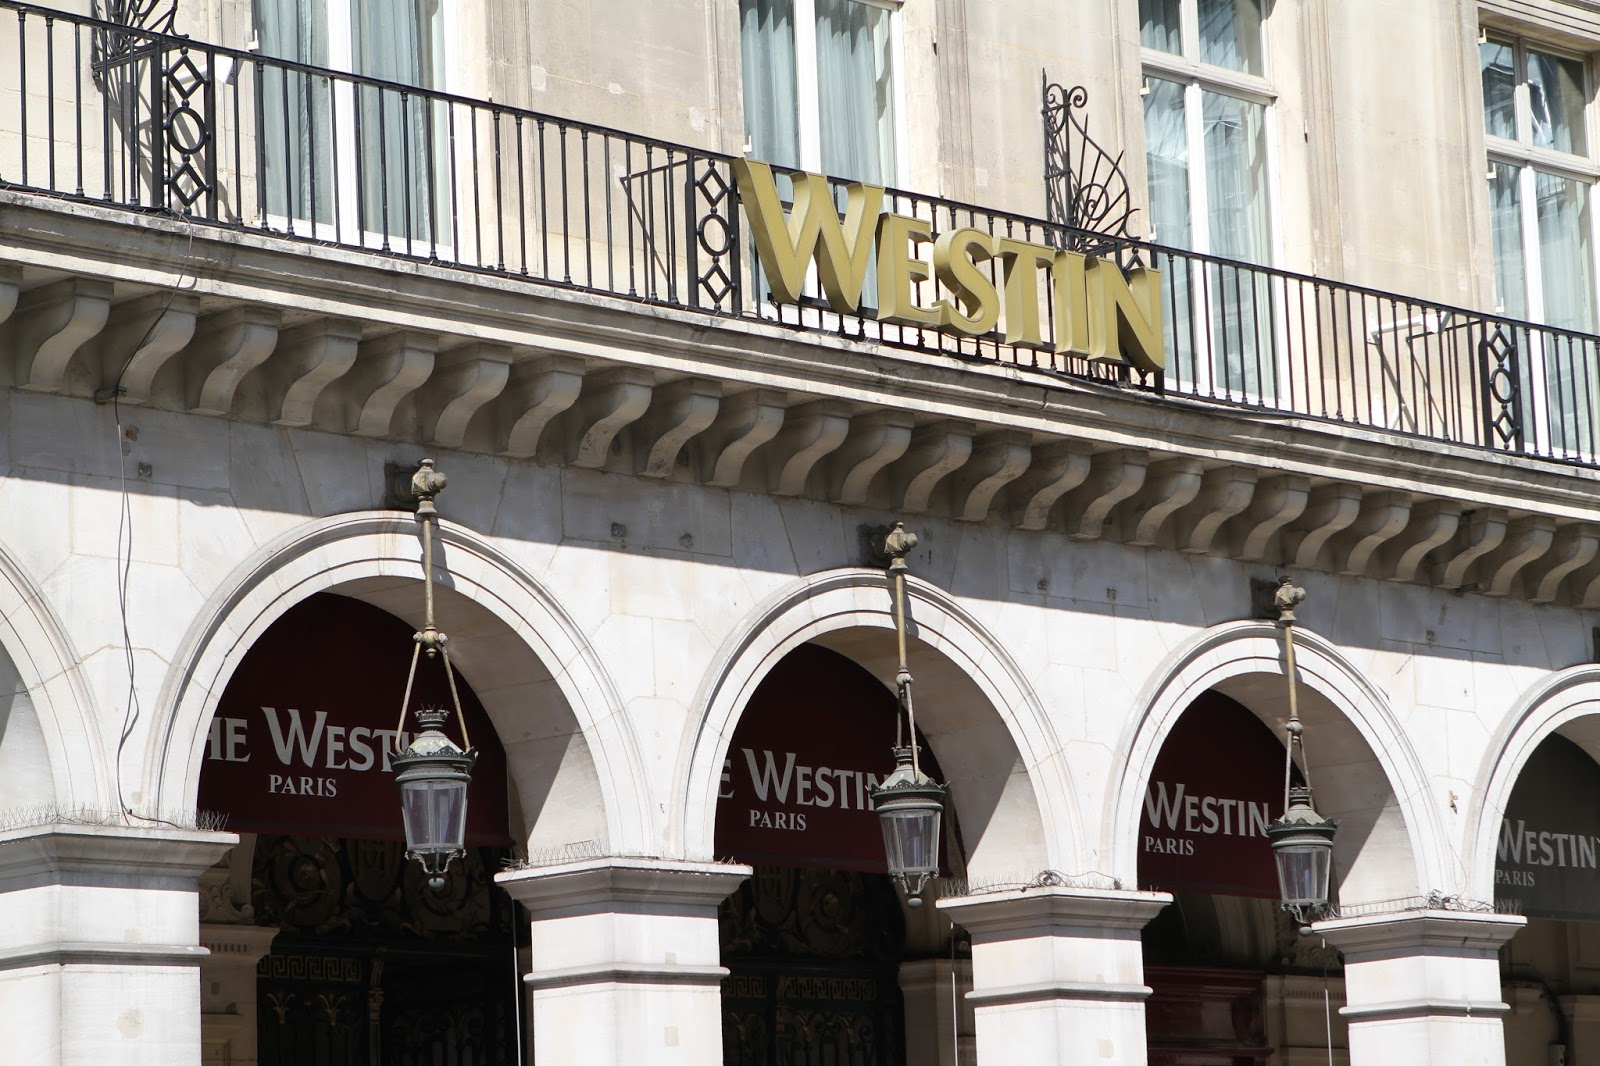 The Westin Paris Vendome